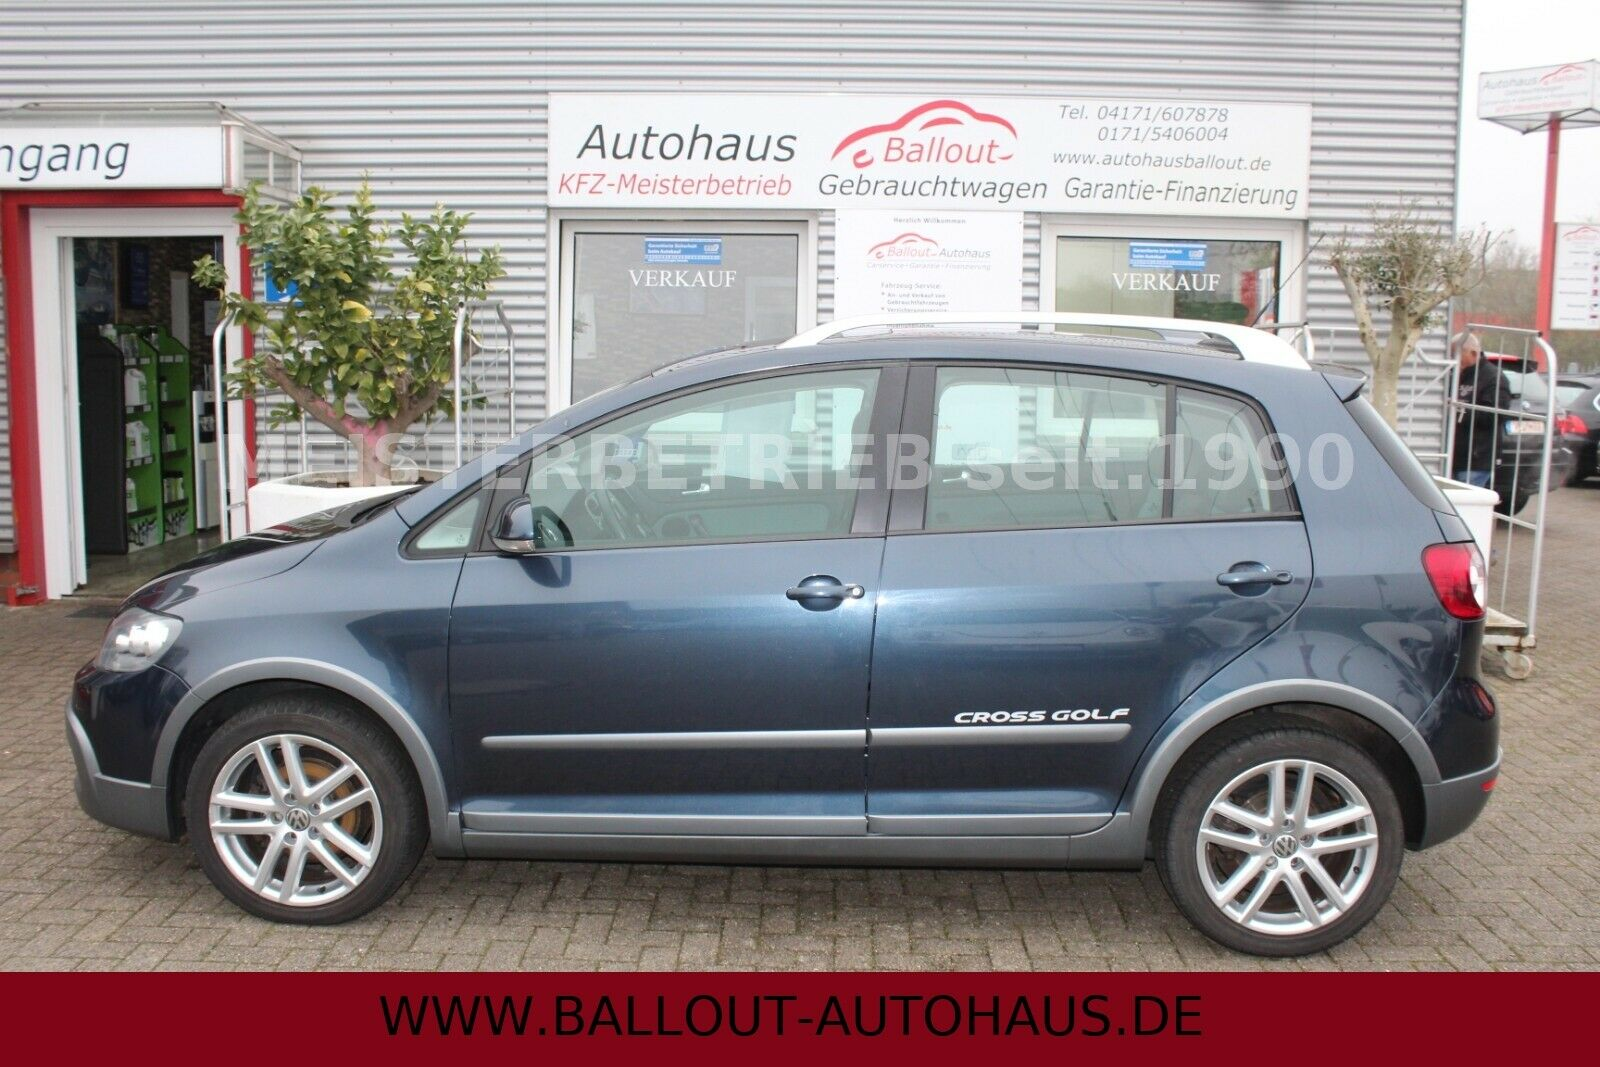 VW Golf 1,4l V Plus Cross*EURO 4*3.HAND*NAVI*6.GANG